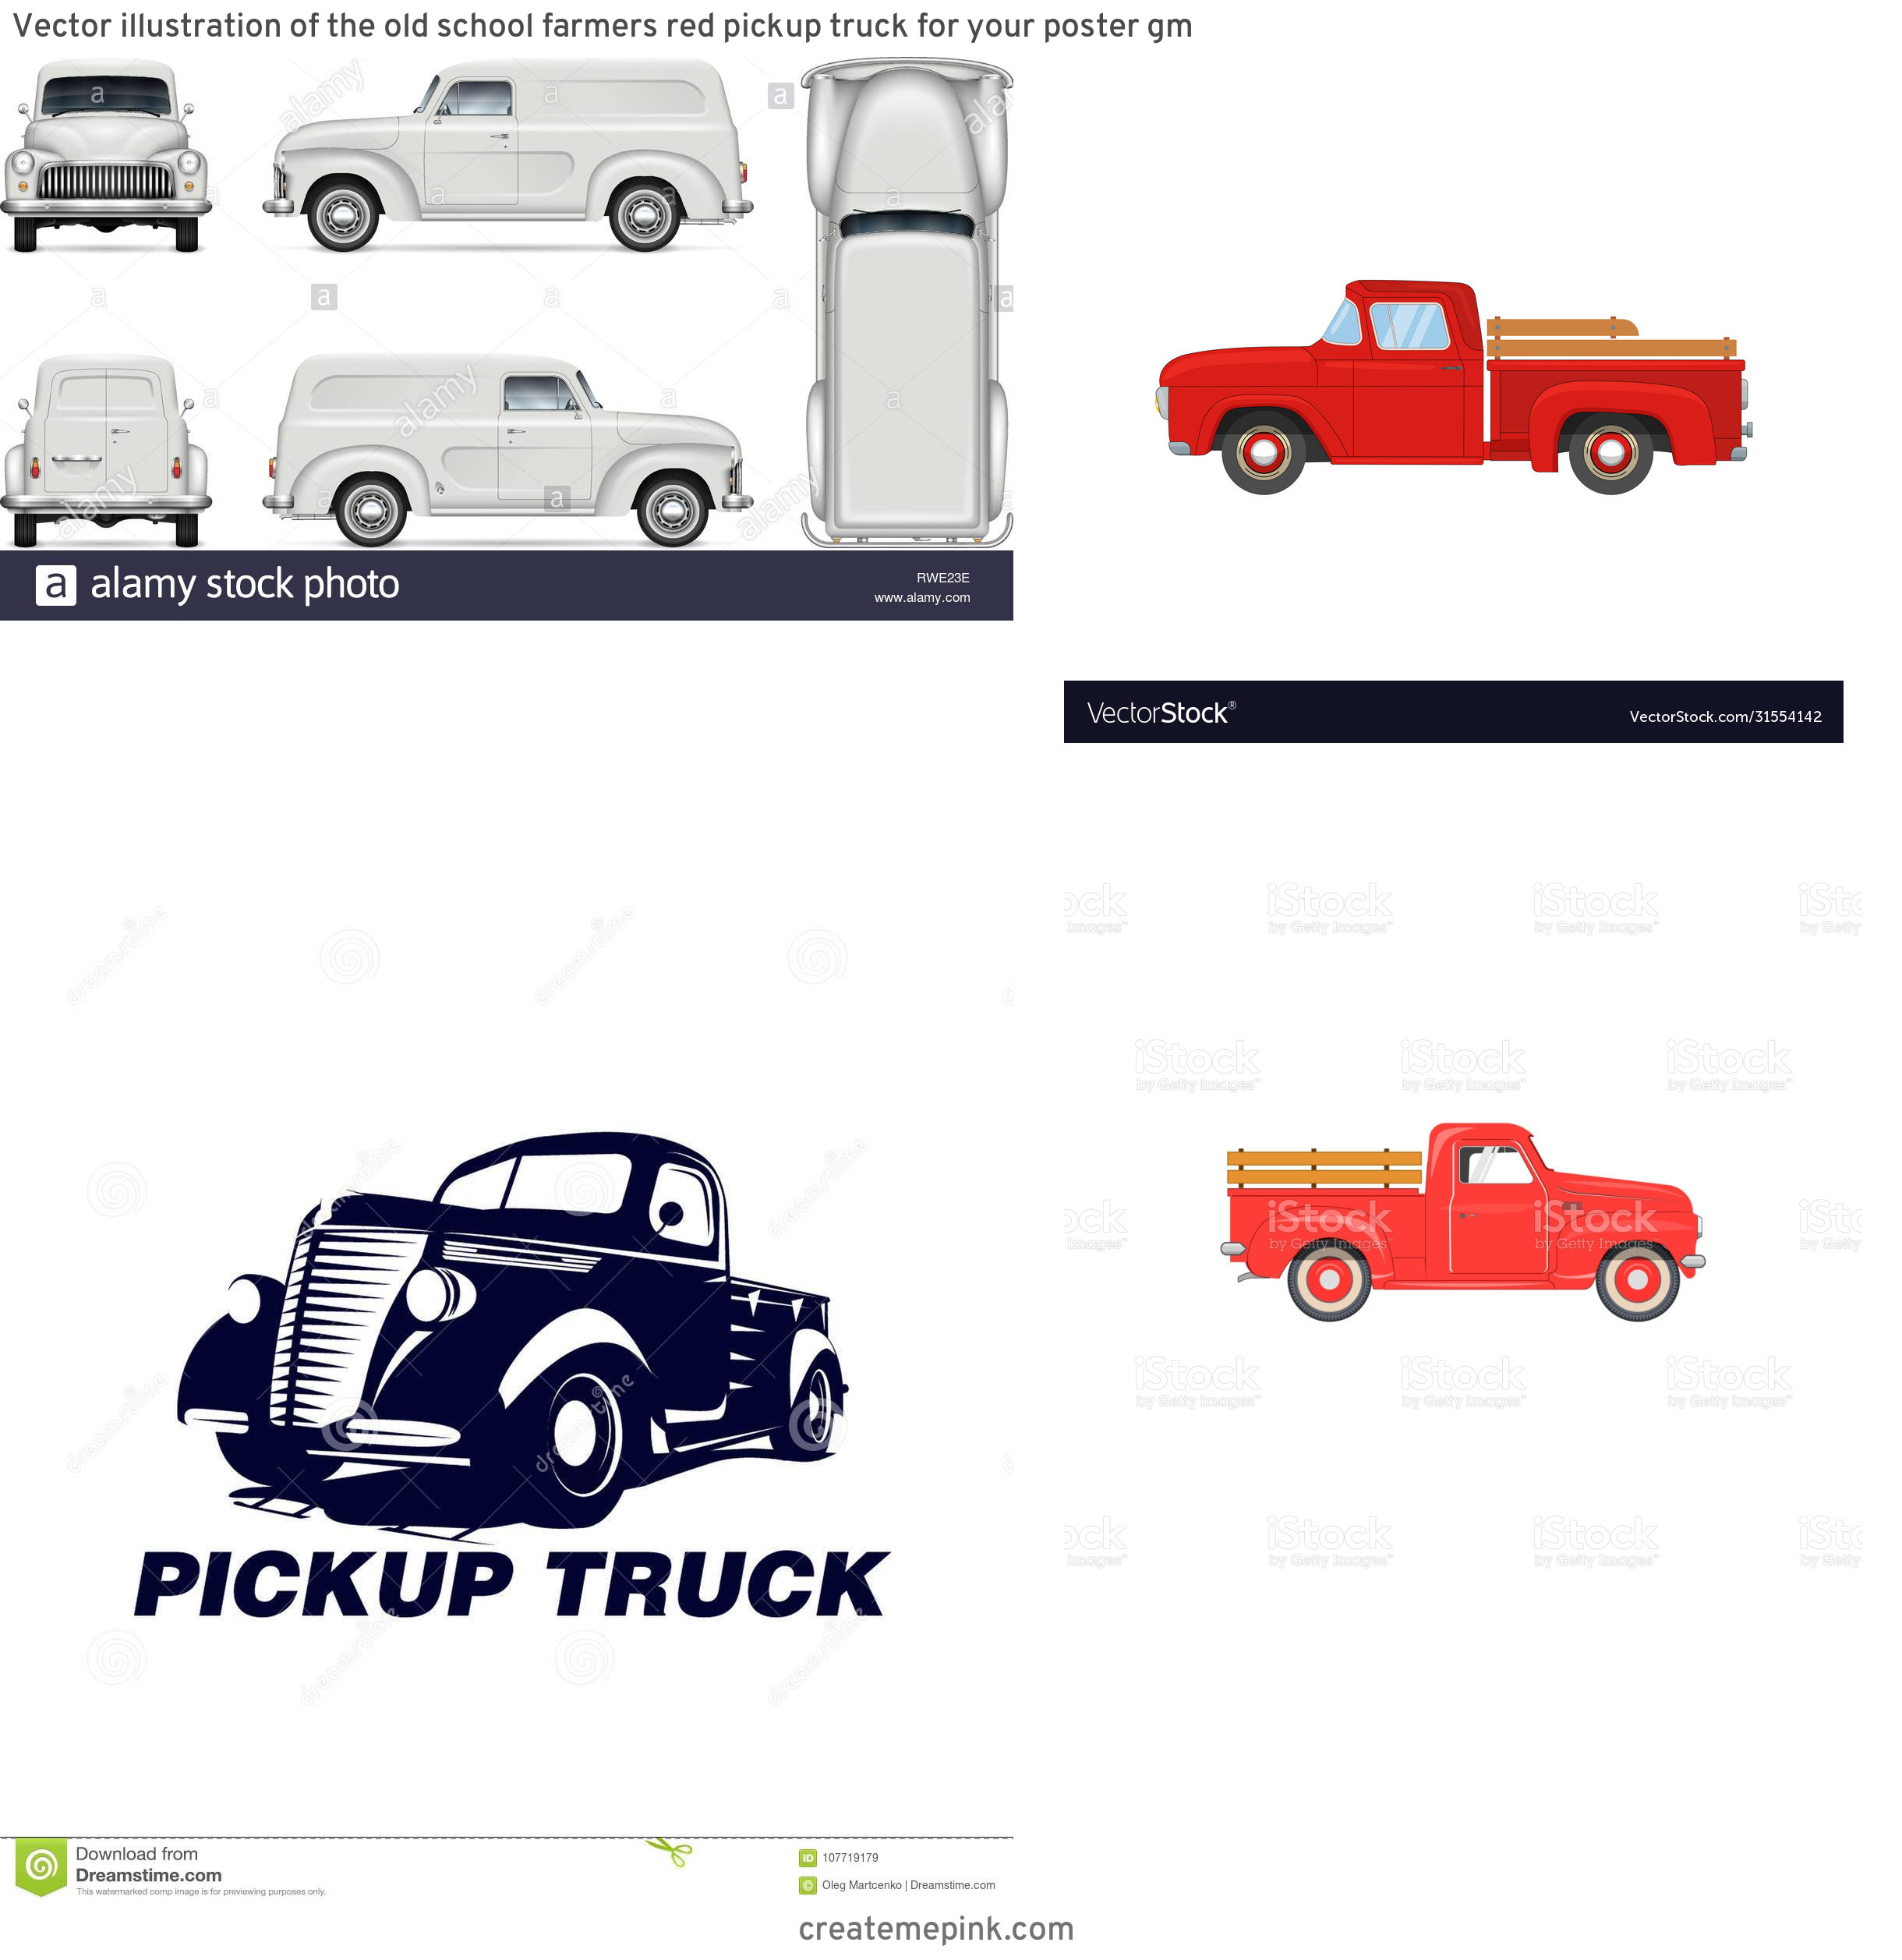 Old Truck Vector: Vector Illustration Of The Old School Farmers Red Pickup Truck For Your Poster Gm